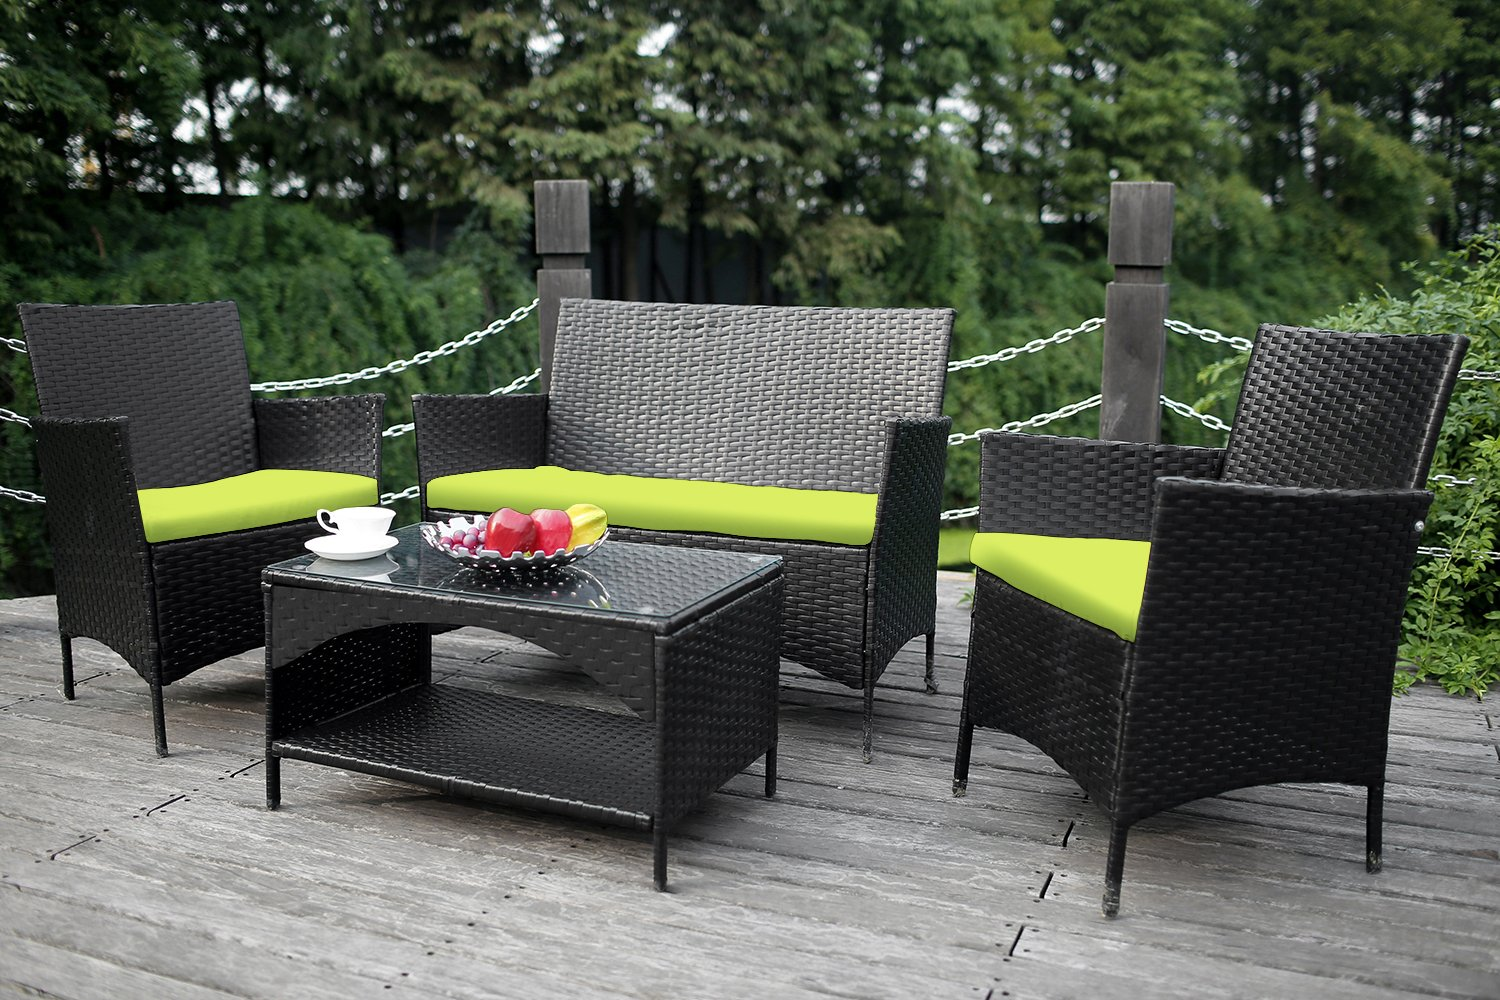 amazoncom merax 4 piece outdoor pe rattan wicker sofa and chairs set rattan patio garden furniture set cushion green garden outdoor - Garden Furniture 4 All